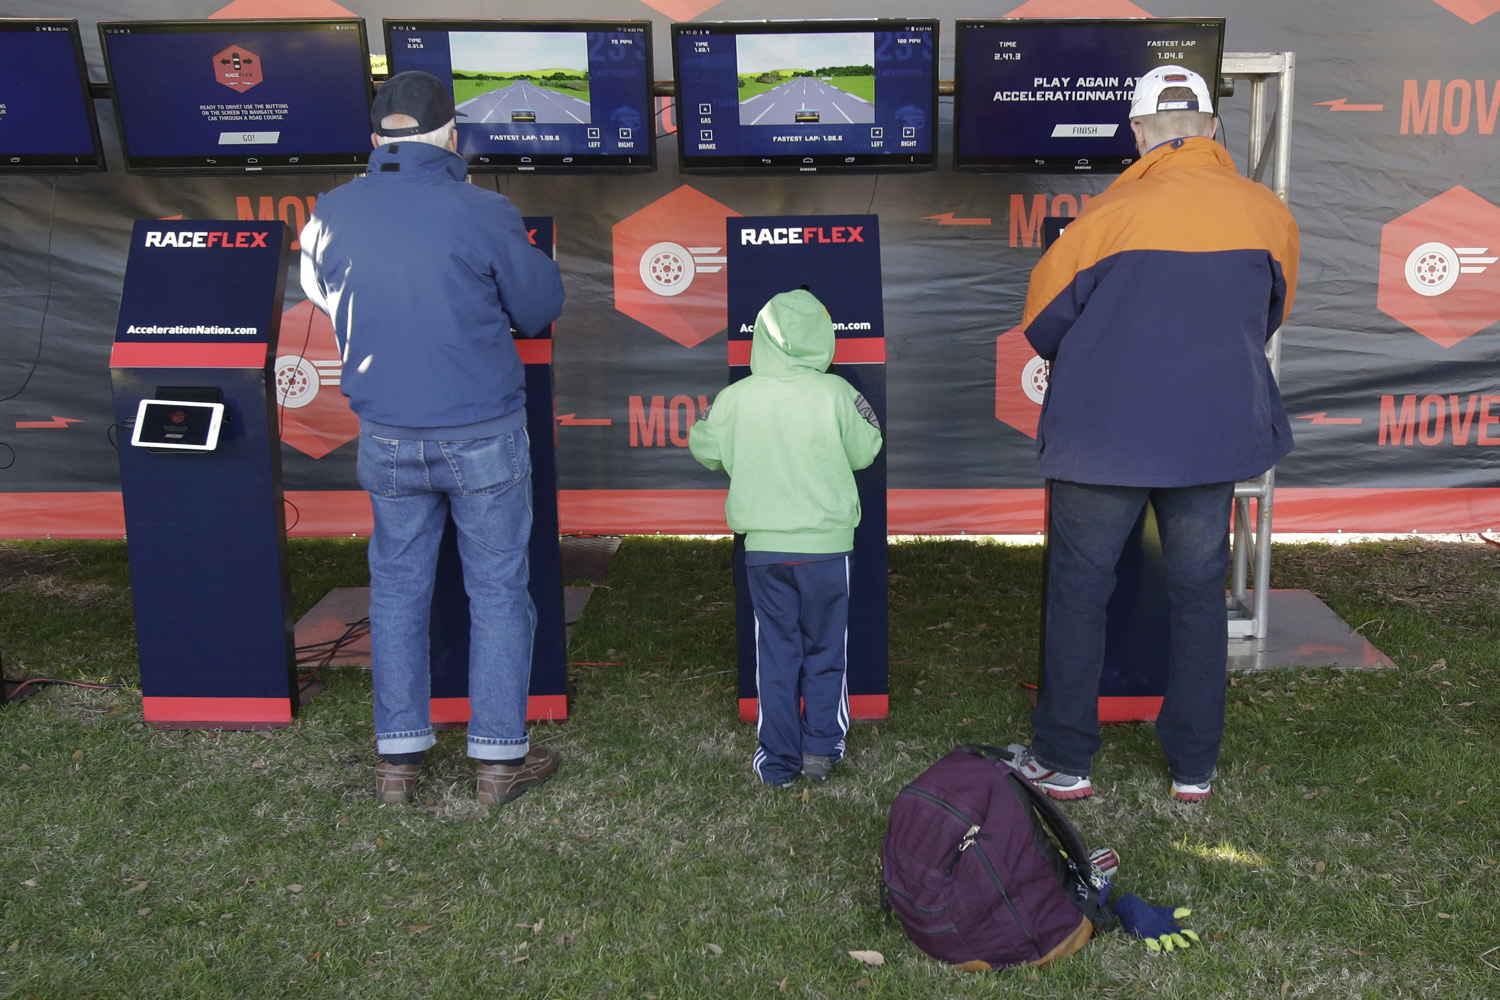 In this file photo, adults as well as kids enjoy a racing video game at the NASCAR Acceleration Nation interactive display at Daytona International Speedway. (John Raoux/AP)